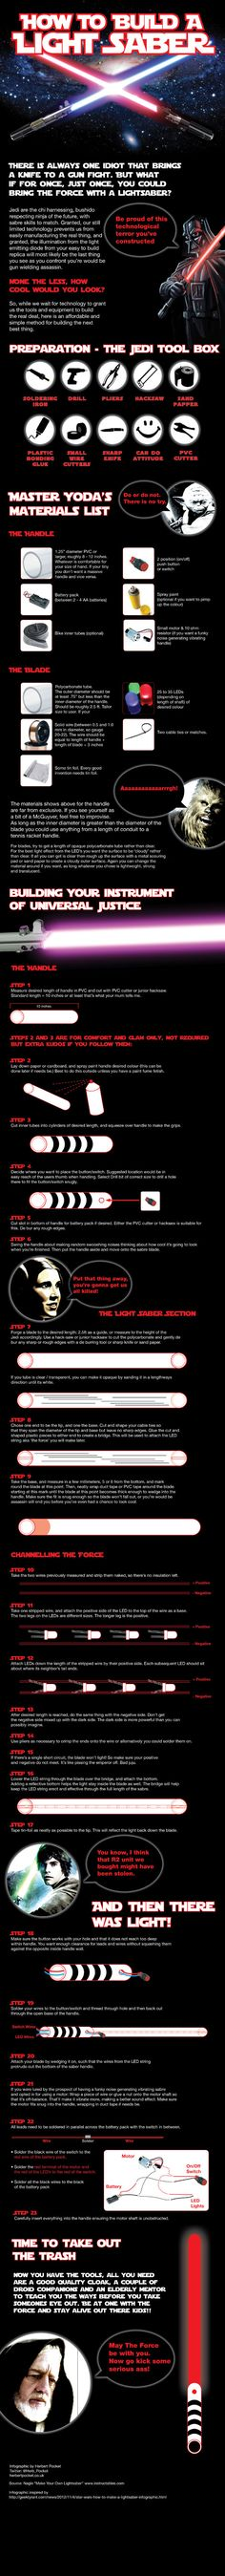 How To Build A Lightsaber!